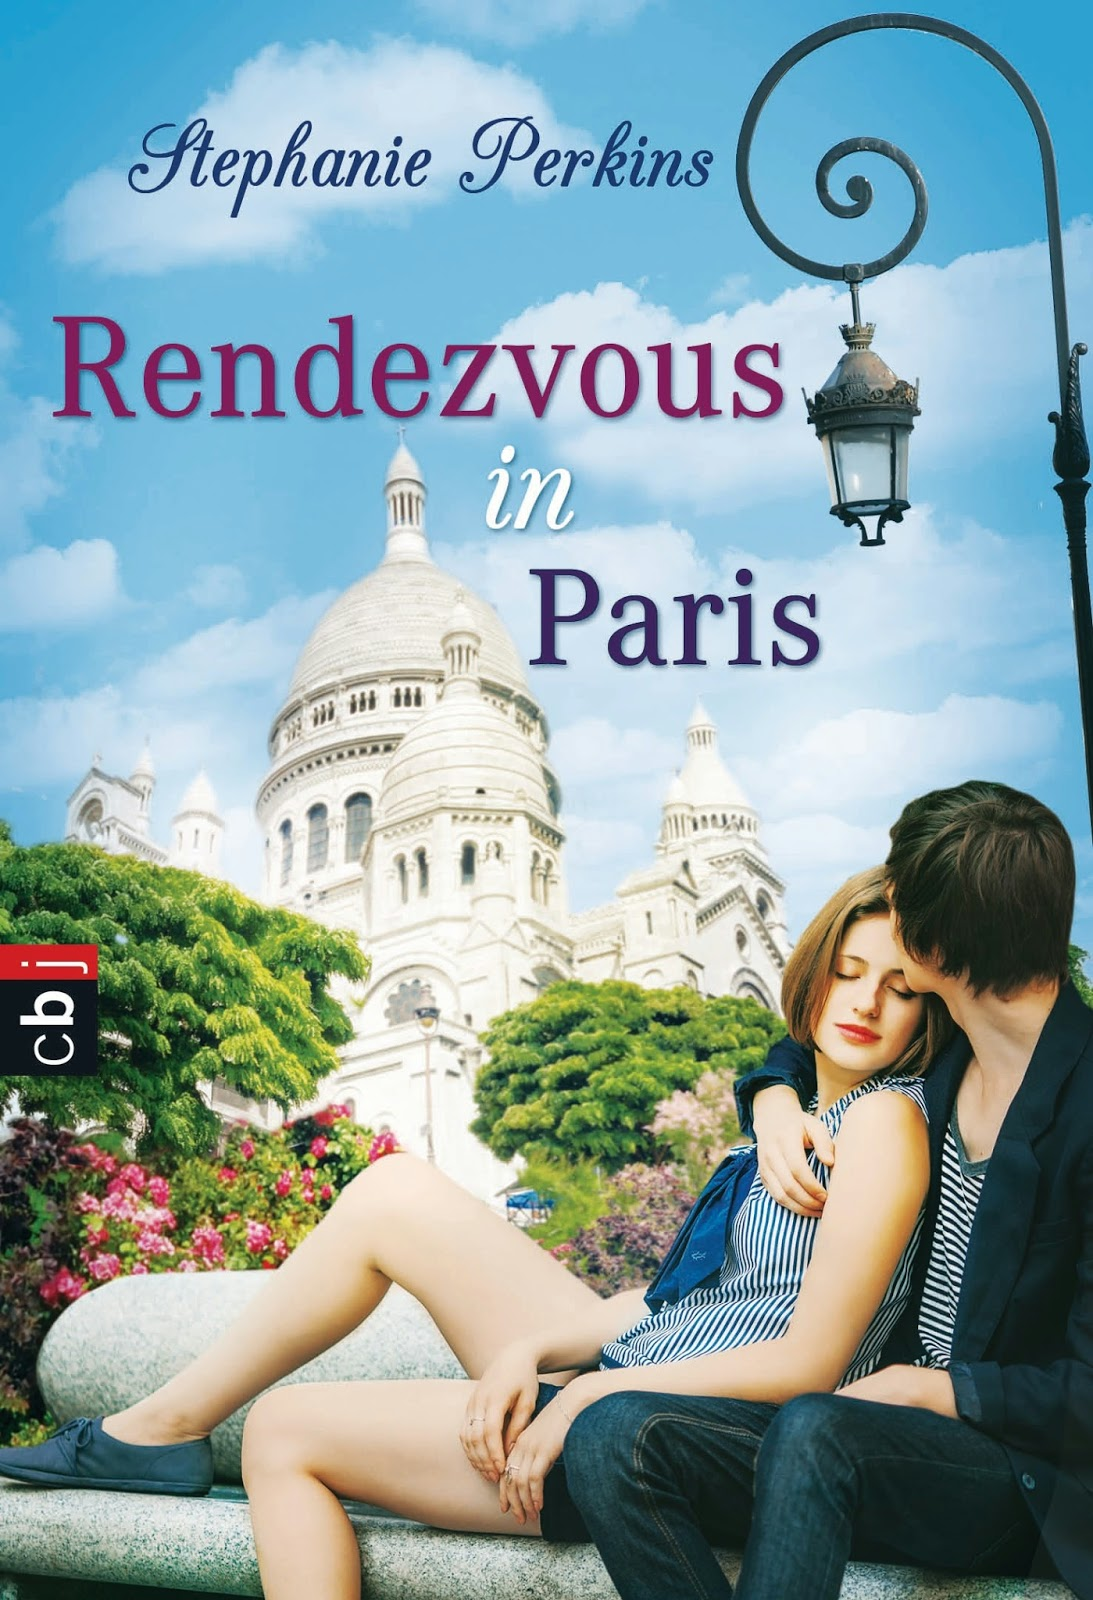 http://www.randomhouse.de/Taschenbuch/Rendezvous-in-Paris/Stephanie-Perkins/e455815.rhd